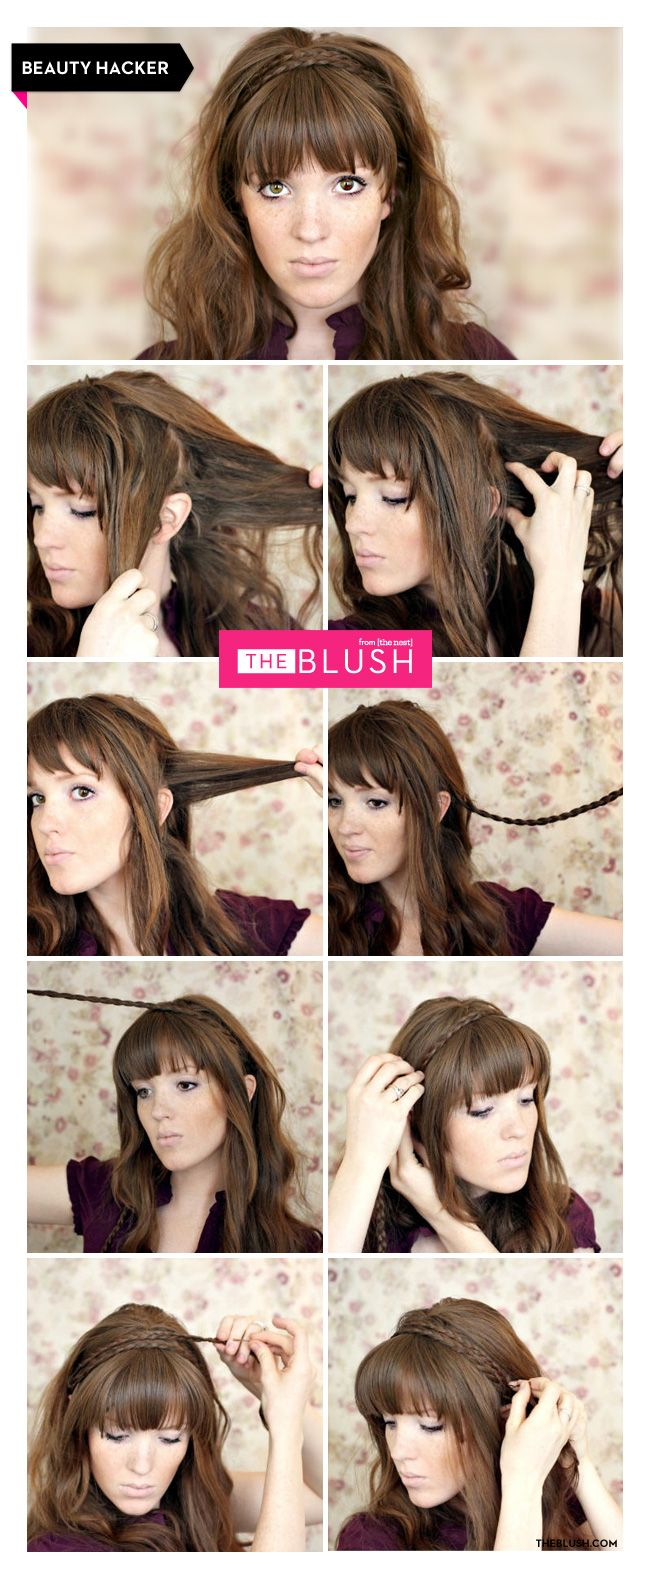 Hair tutorial! How to DIY a braided headband www.theblush.com